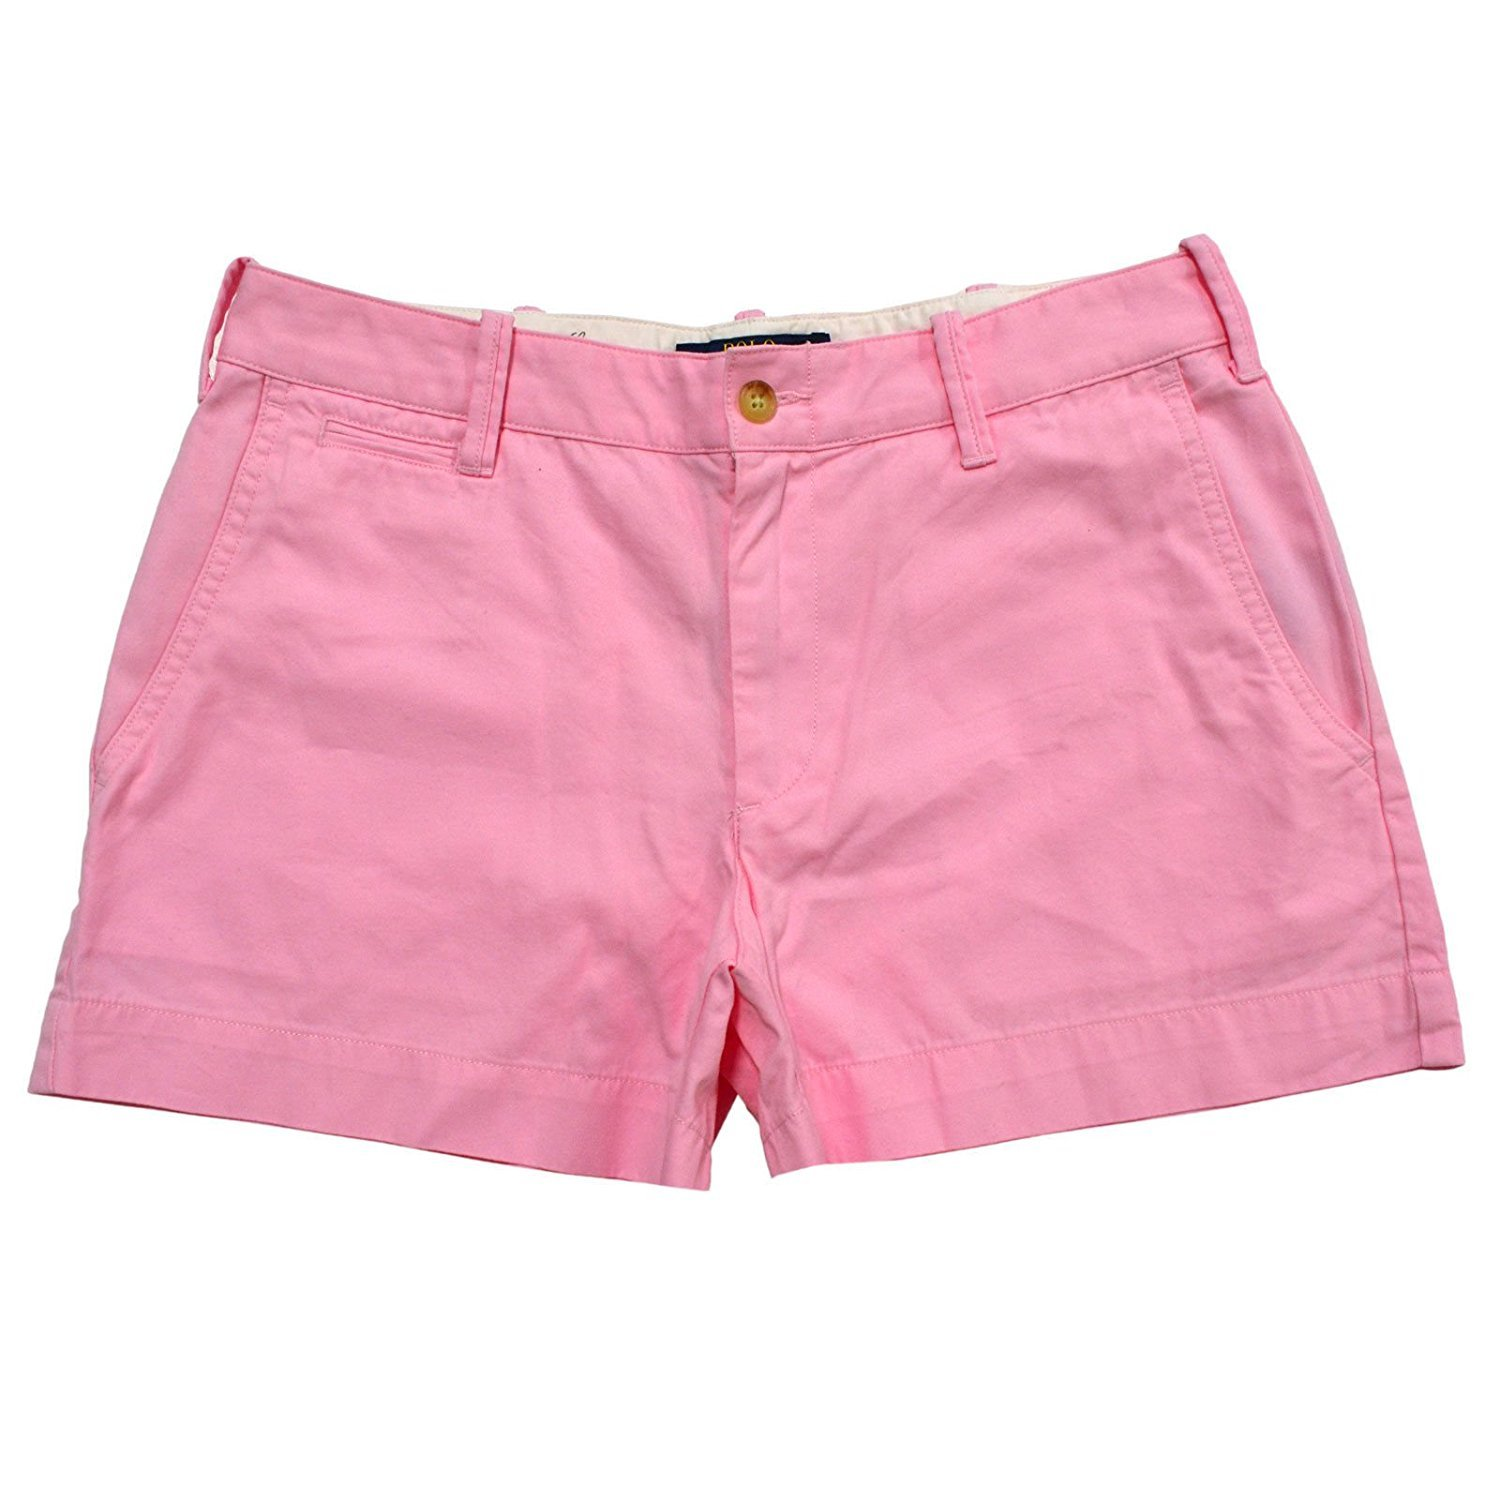 4576bd6b6 Top7: Polo Ralph Lauren Womens 3.5in Shorts (10, Pink)